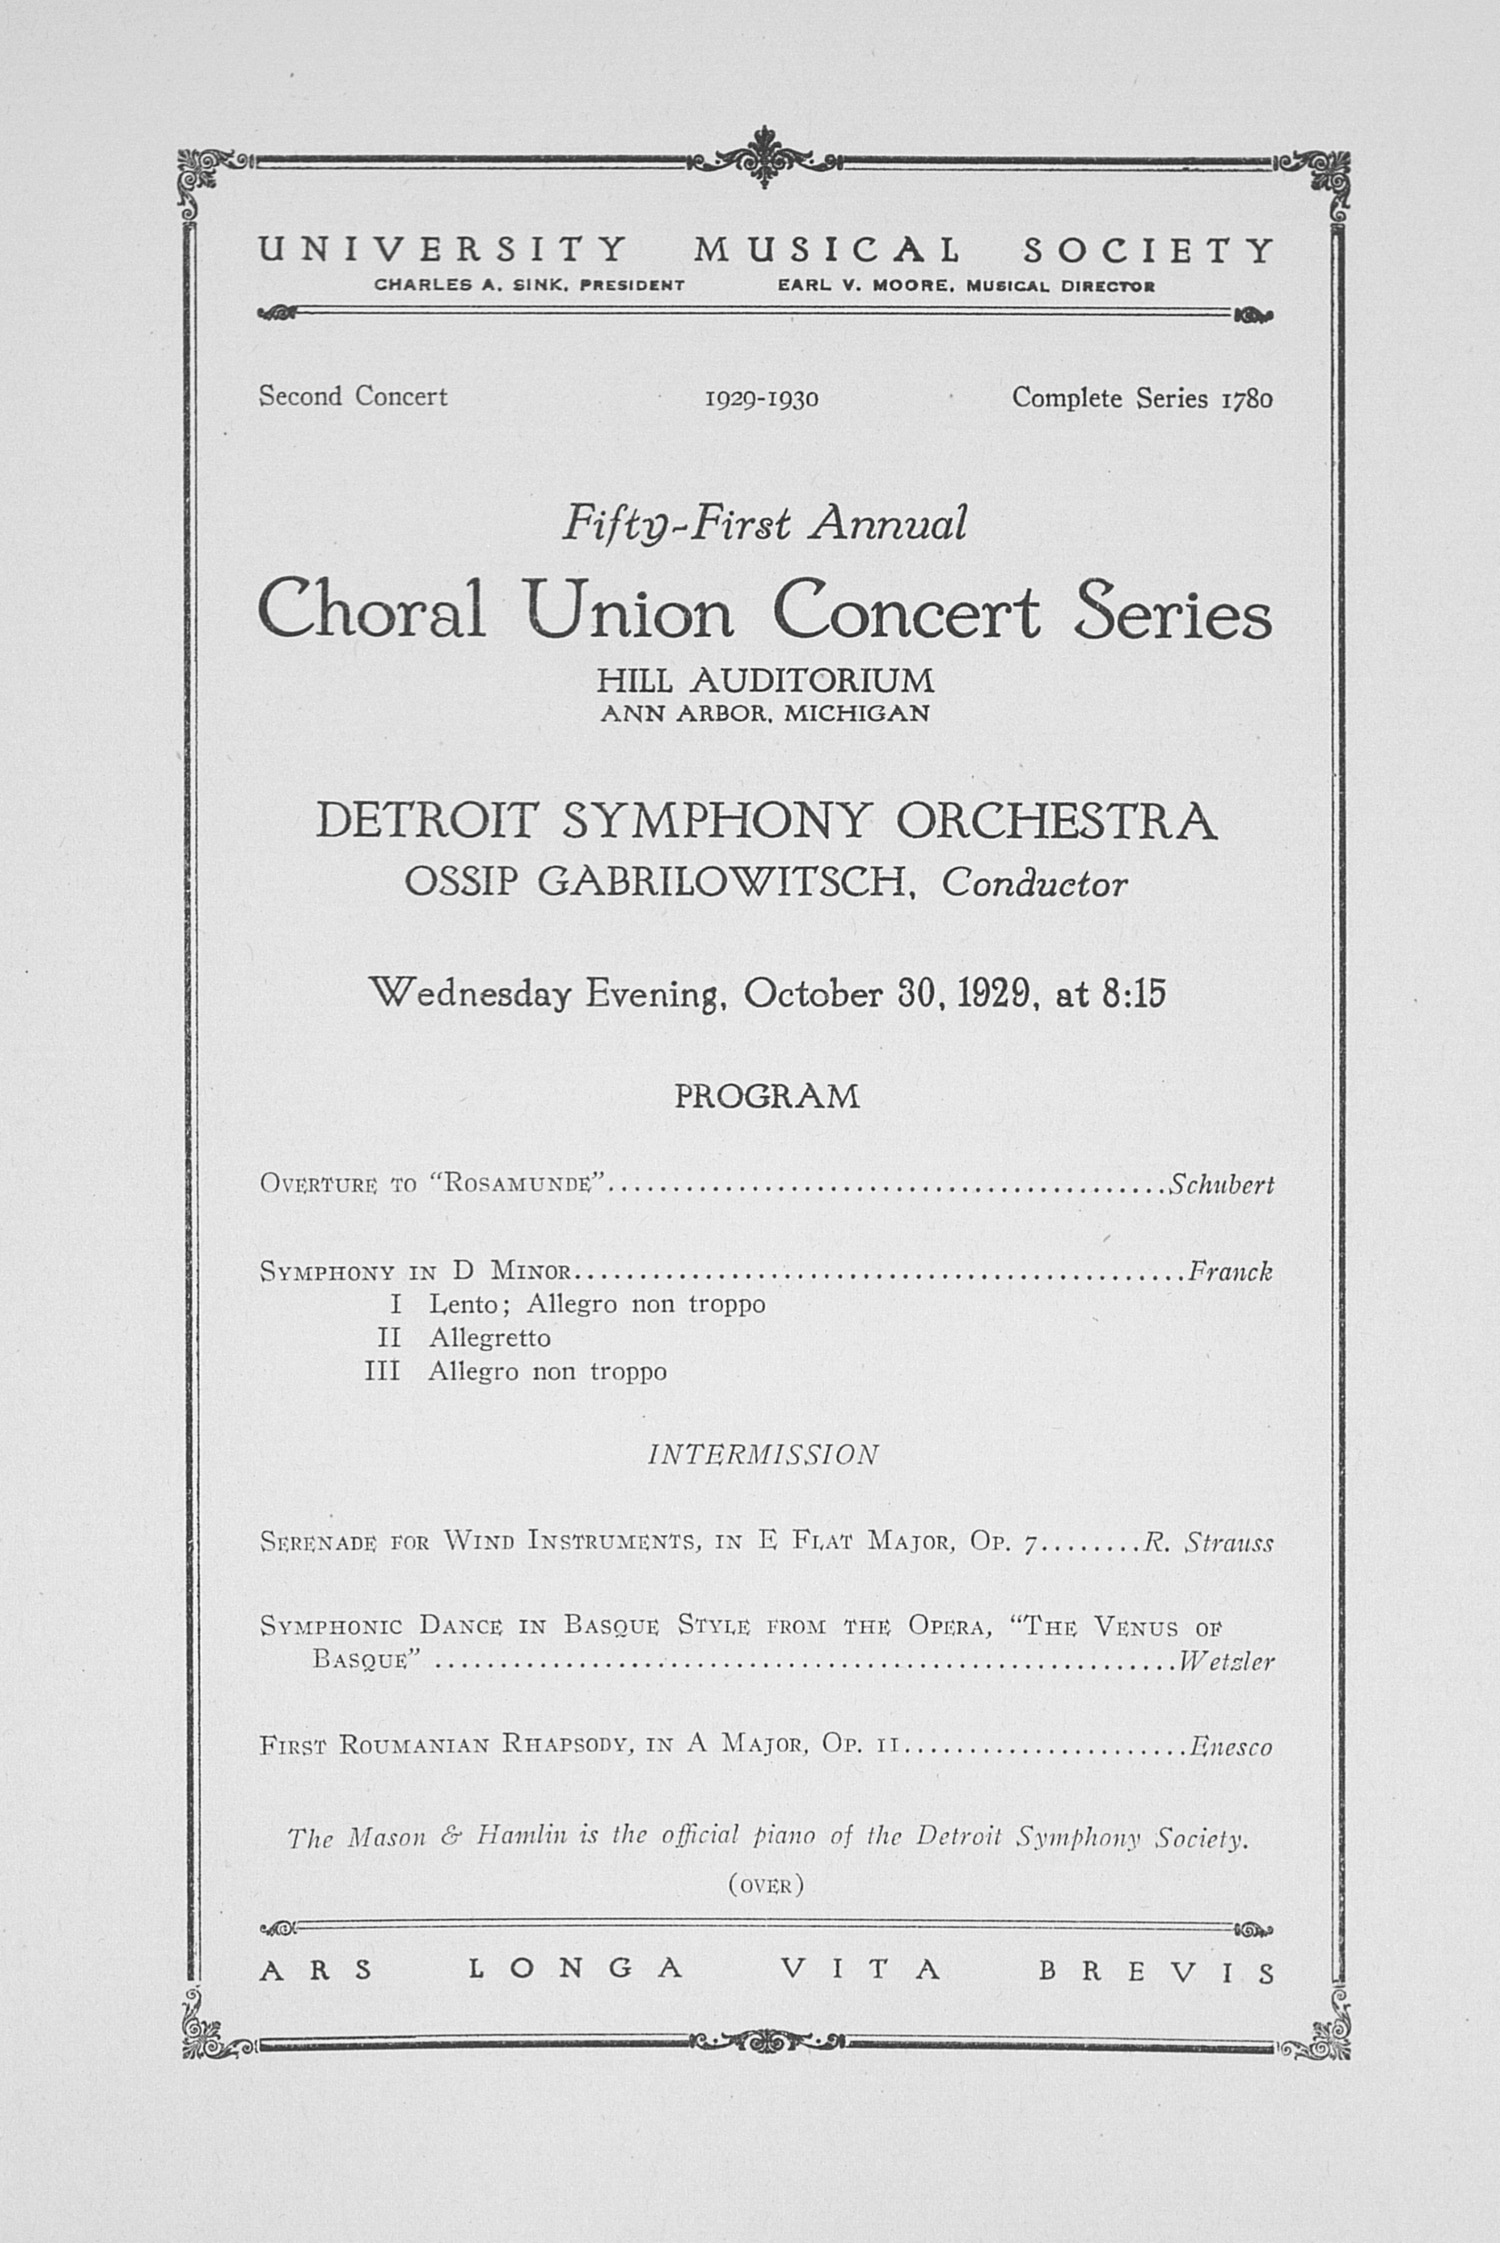 UMS Concert Program, October 30, 1929: Fifty-first Annual Choral Union Concert Series -- Detroit Symphony Orchestra image